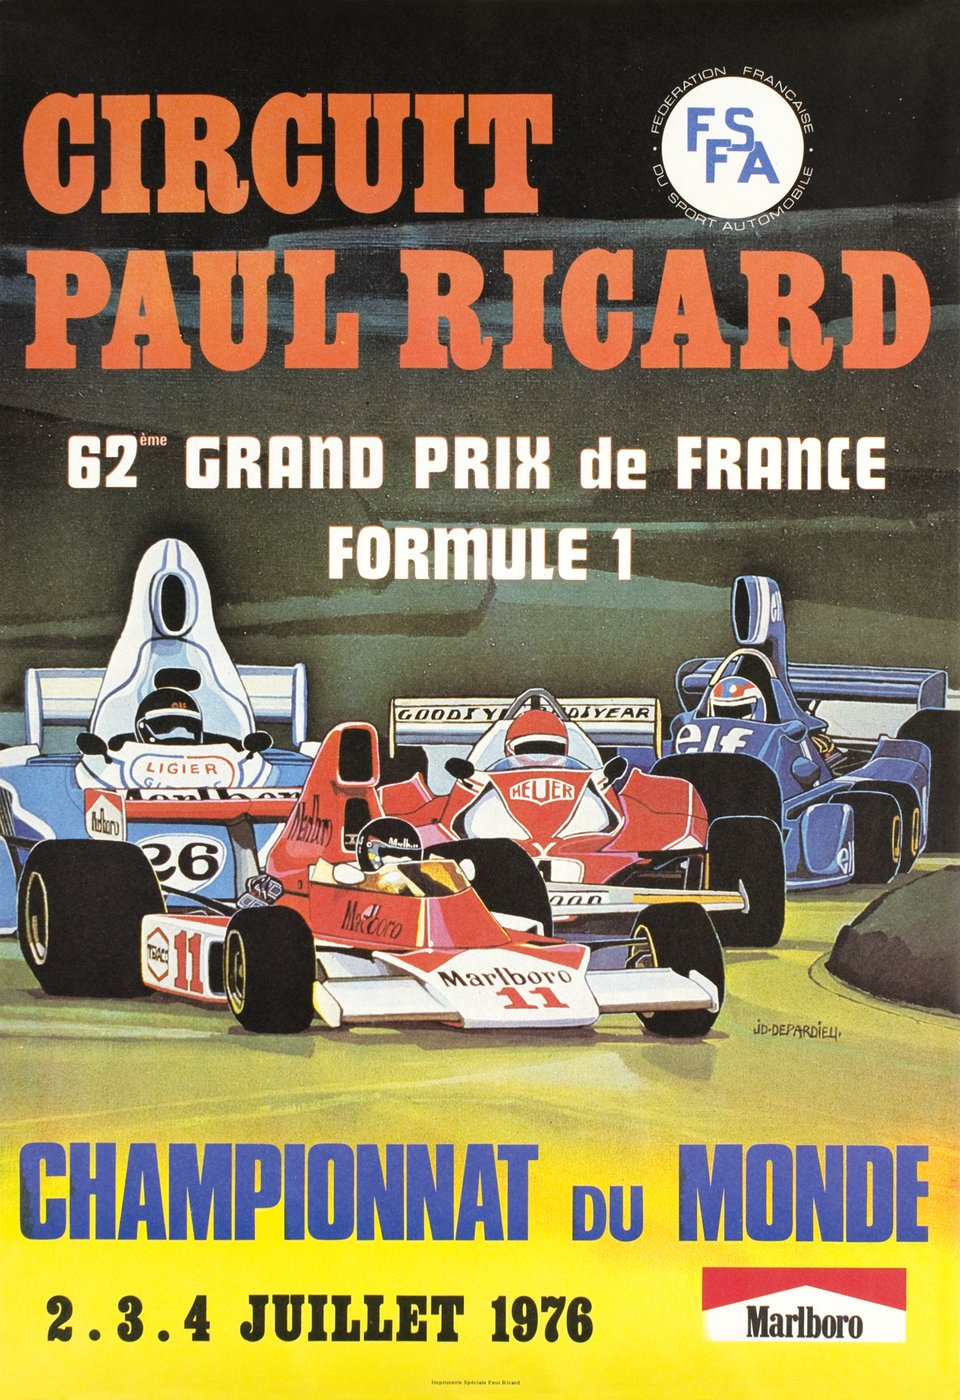 Circuit Paul Ricard, J. D. Depardieu